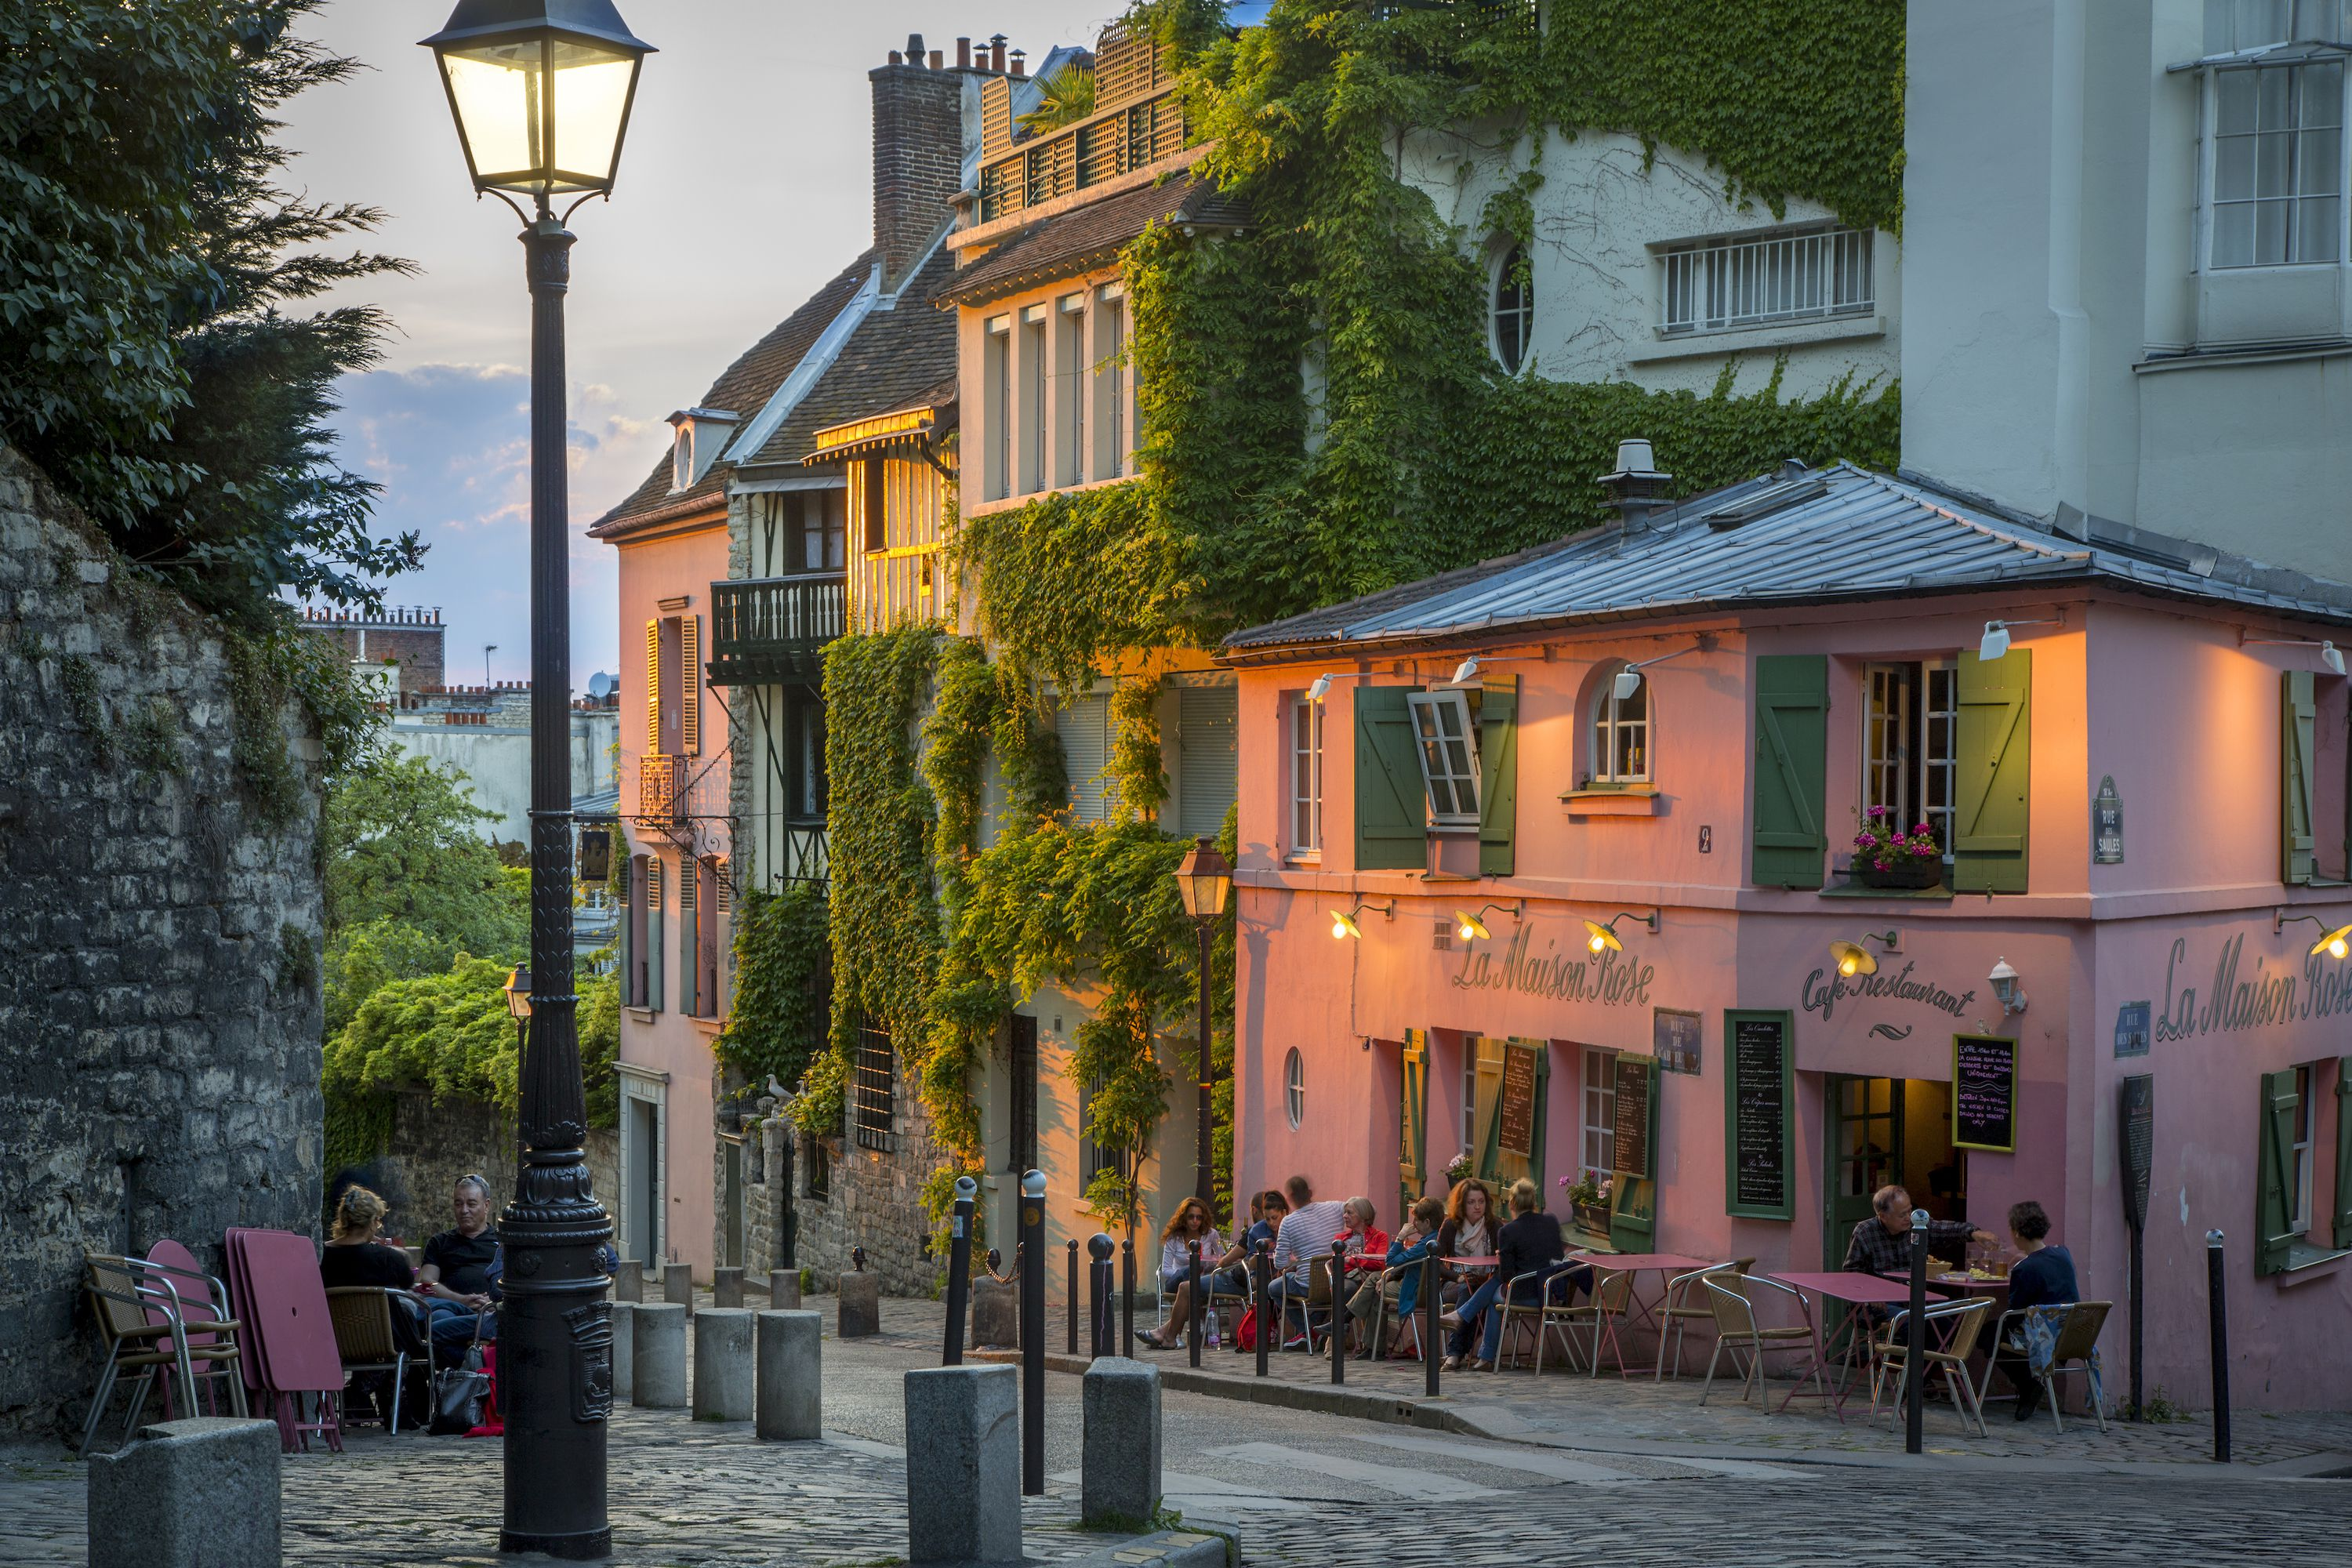 The village-like backstreets of Montmartre are heavenly during sunset on a summer evening.